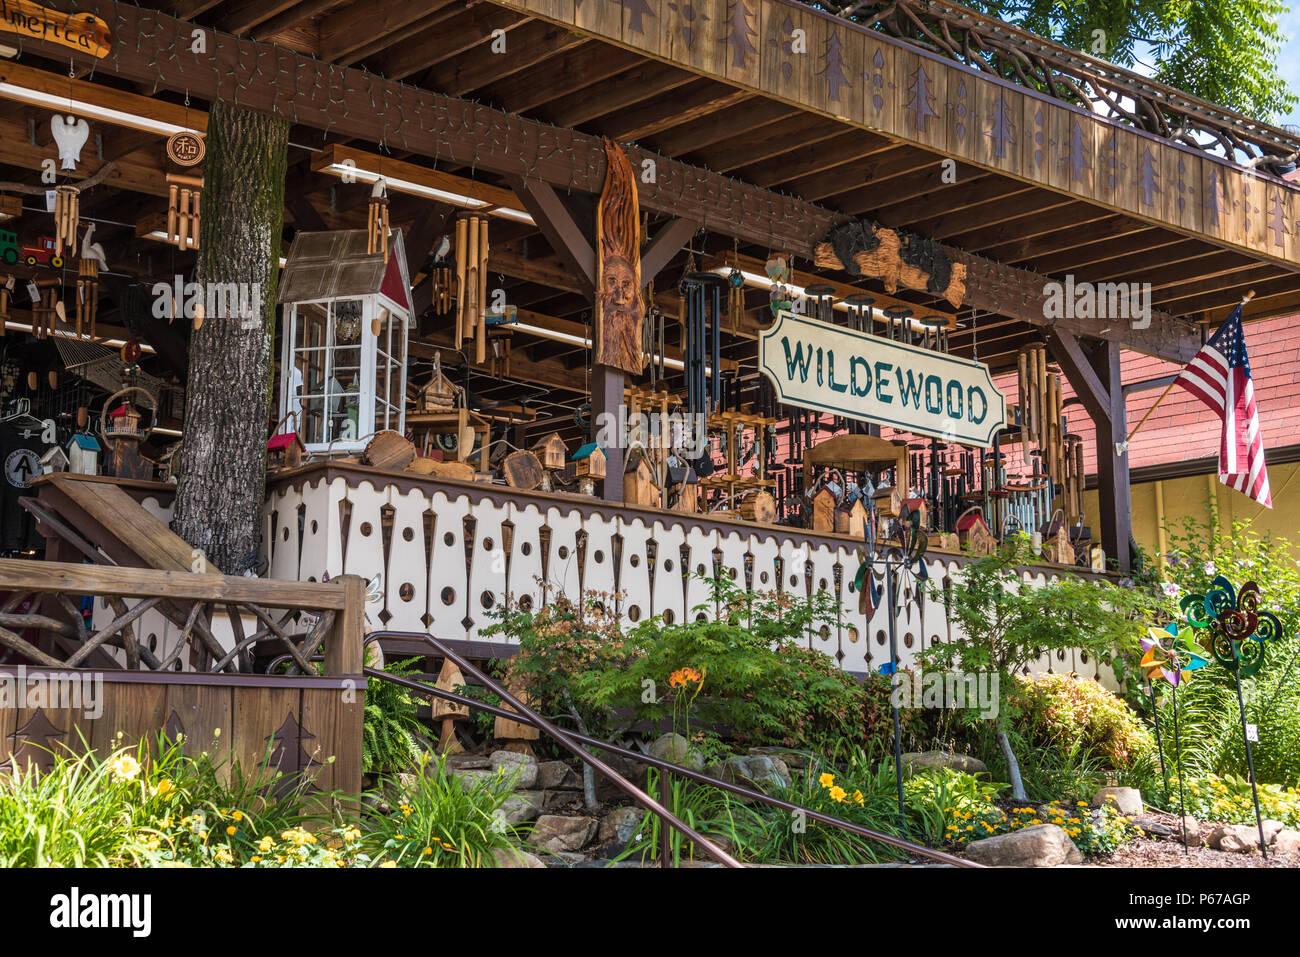 Wildewood Shop in the Blue Ridge Mountains along the Chattahoochee River in downtown Helen, Georgia. (USA) Stock Photo